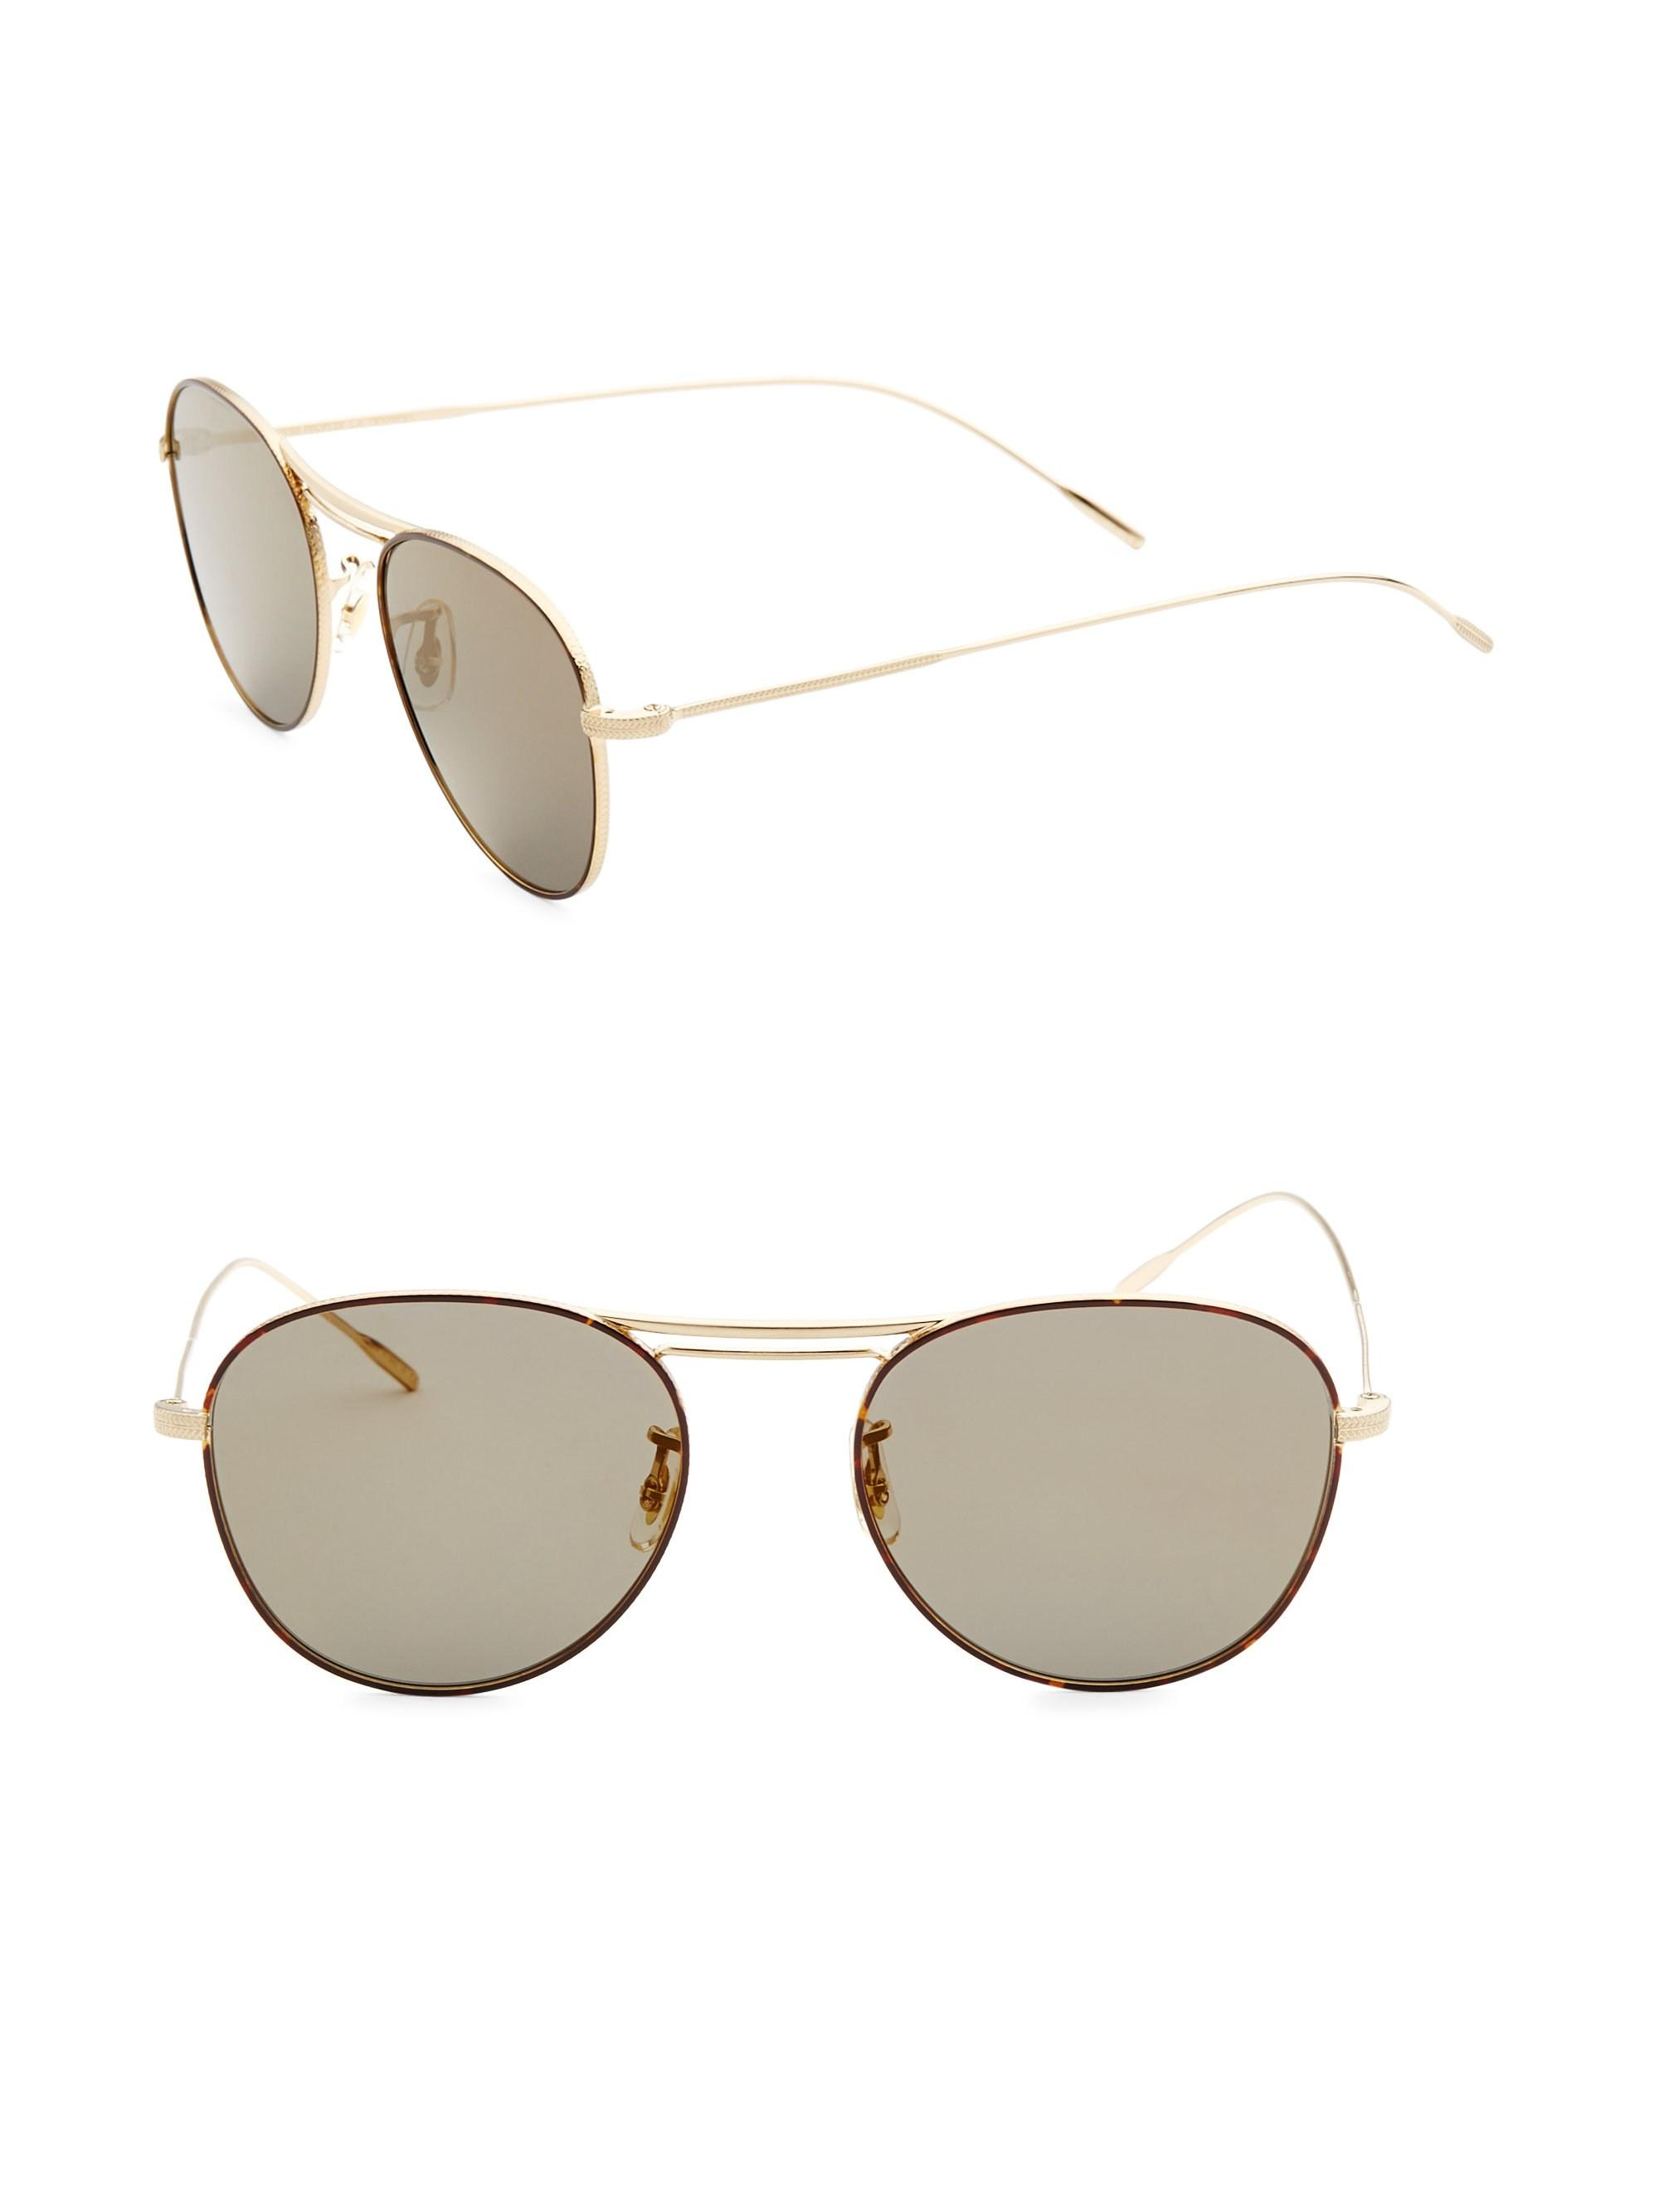 Oliver Peoples Women s Cade 52mm Aviator Sunglasses - Gold in ... 7e6dd62cd7